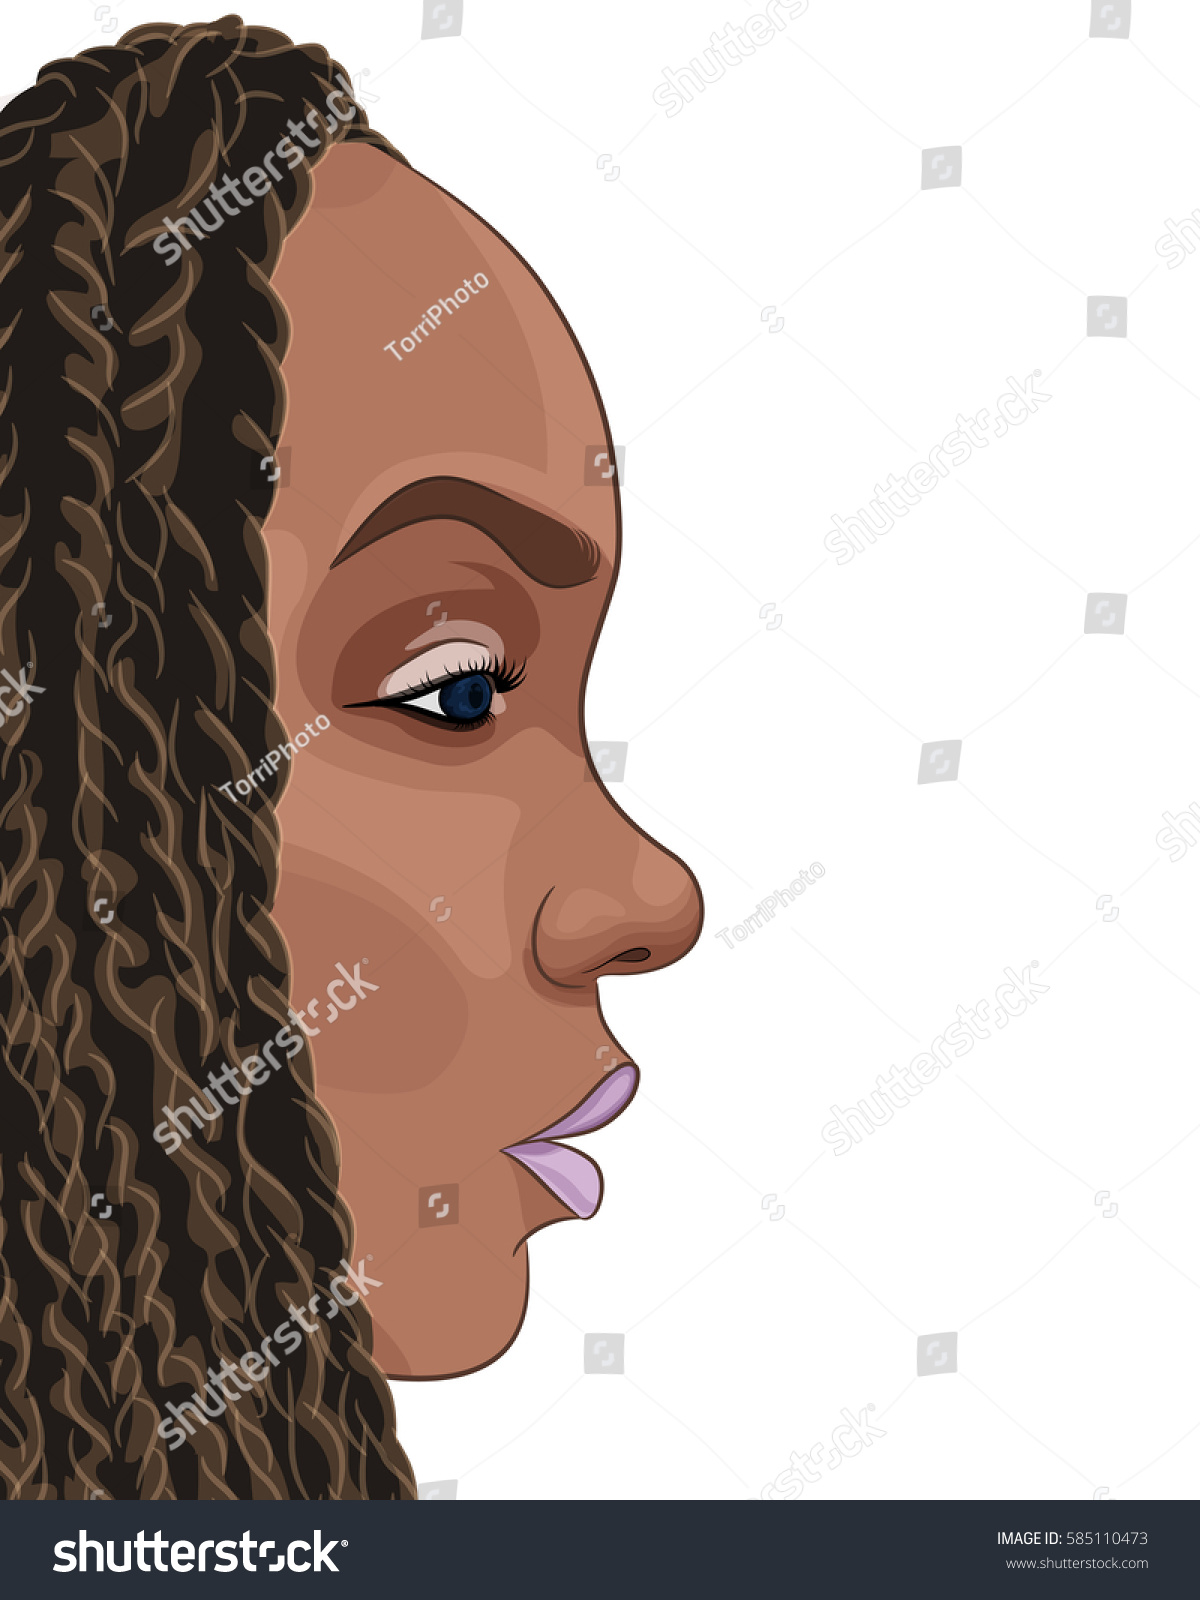 https://www.shutterstock.com/image-vector/cartoon-portrait-young-african-girl-vector-585110473